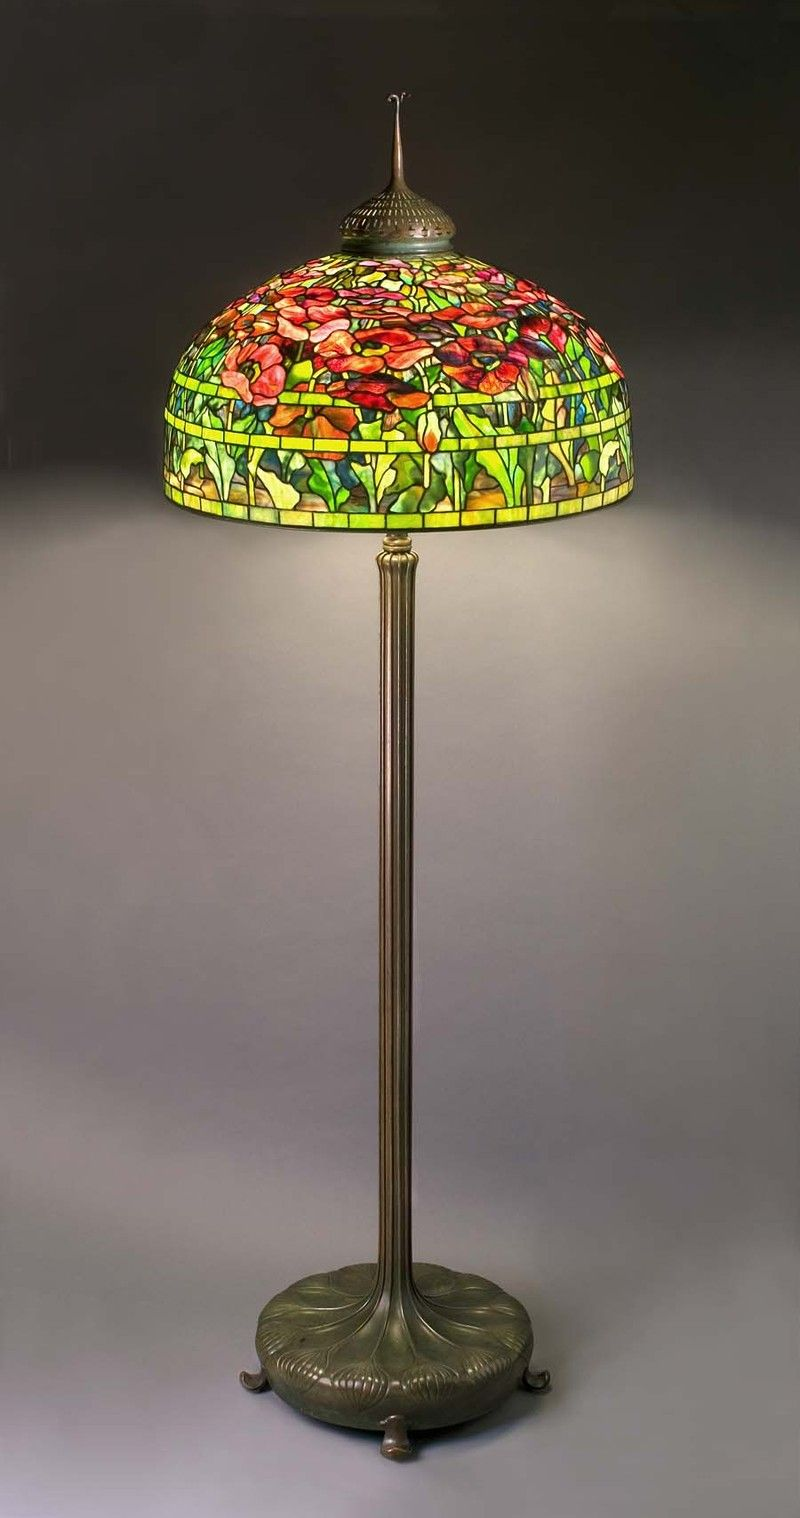 Tiffany Studios 1902 1938 Banded Poppy Floor Lamp After 1906 Leaded Glass And Bronze Shade 26 Inches Tiffany Floor Lamp Tiffany Style Lamp Tiffany Lamps